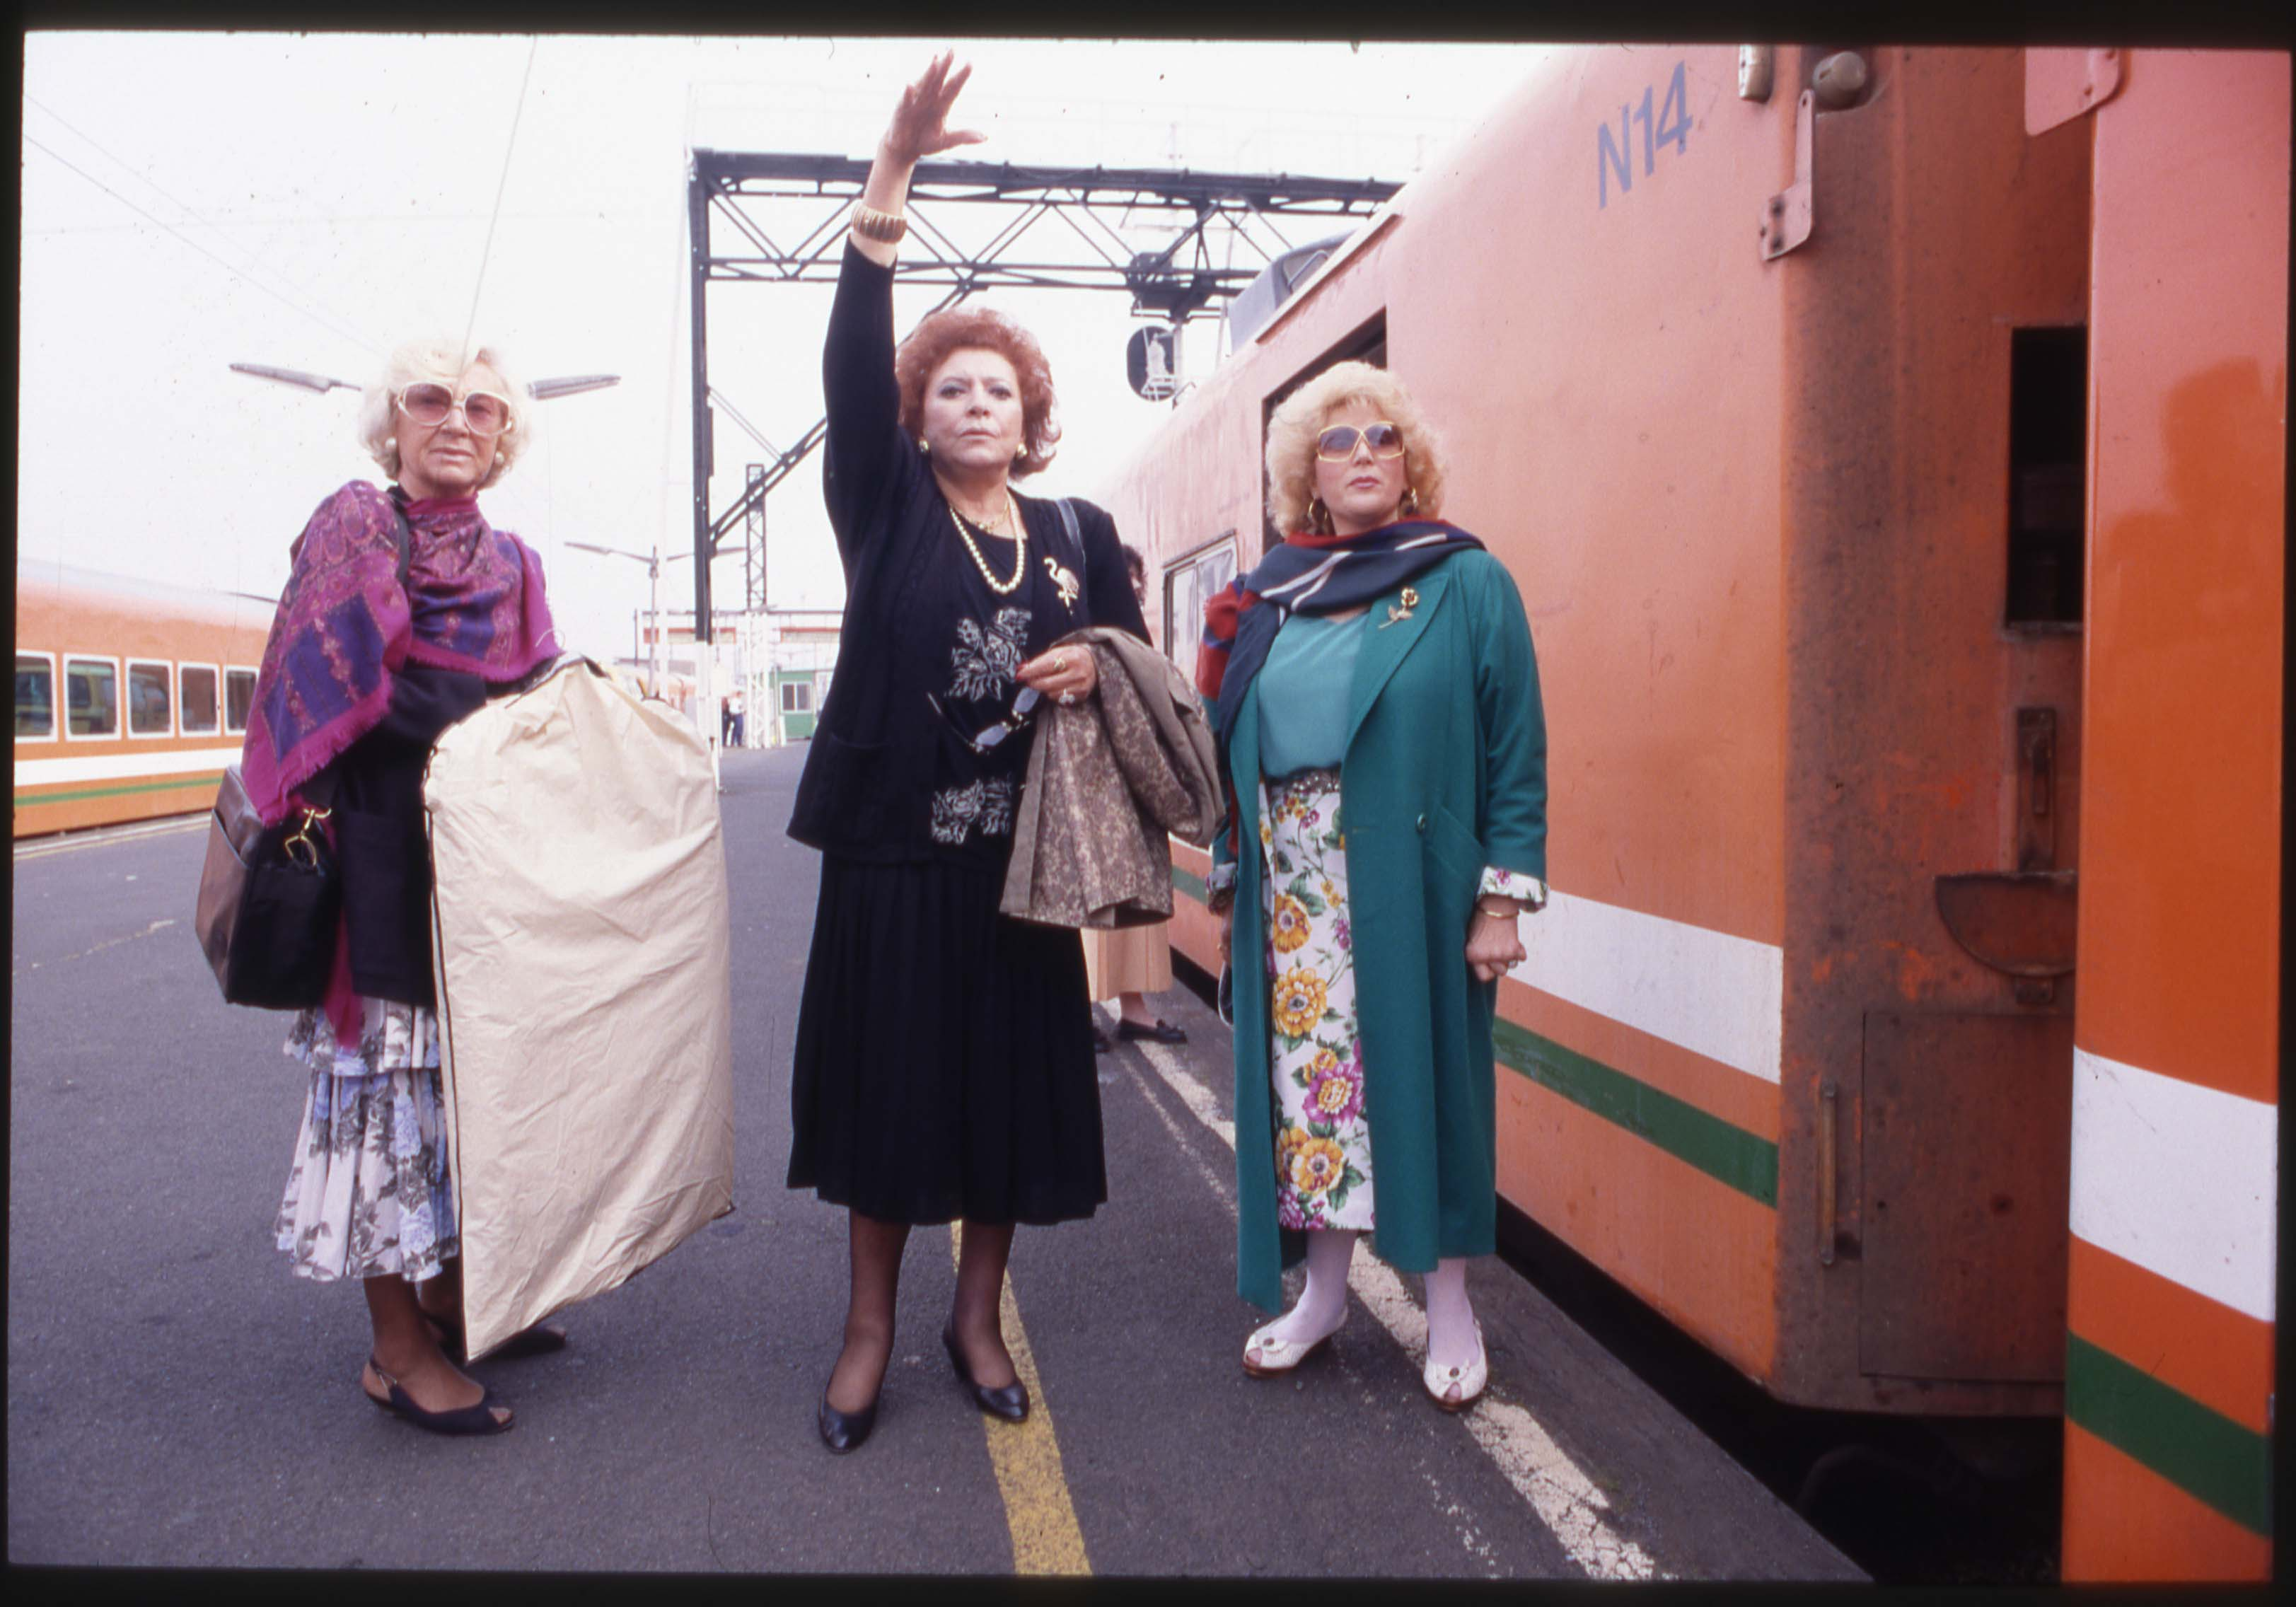 Older women hailing a train